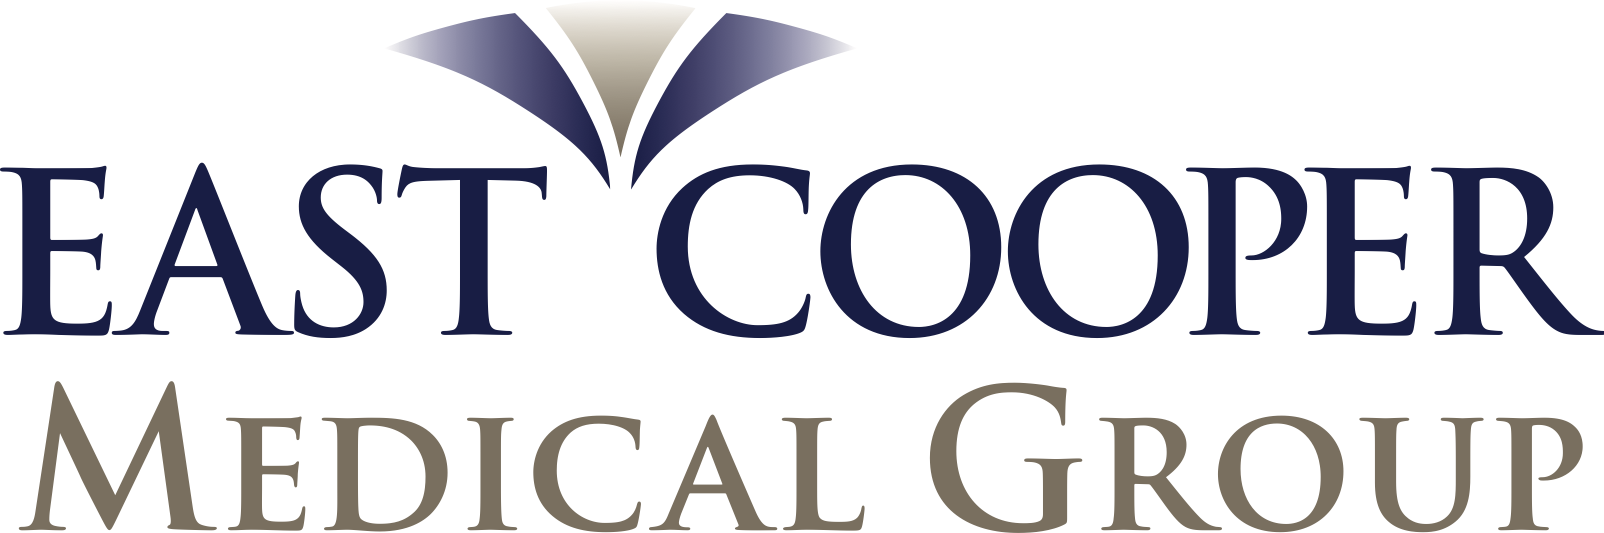 East Cooper Medical Group